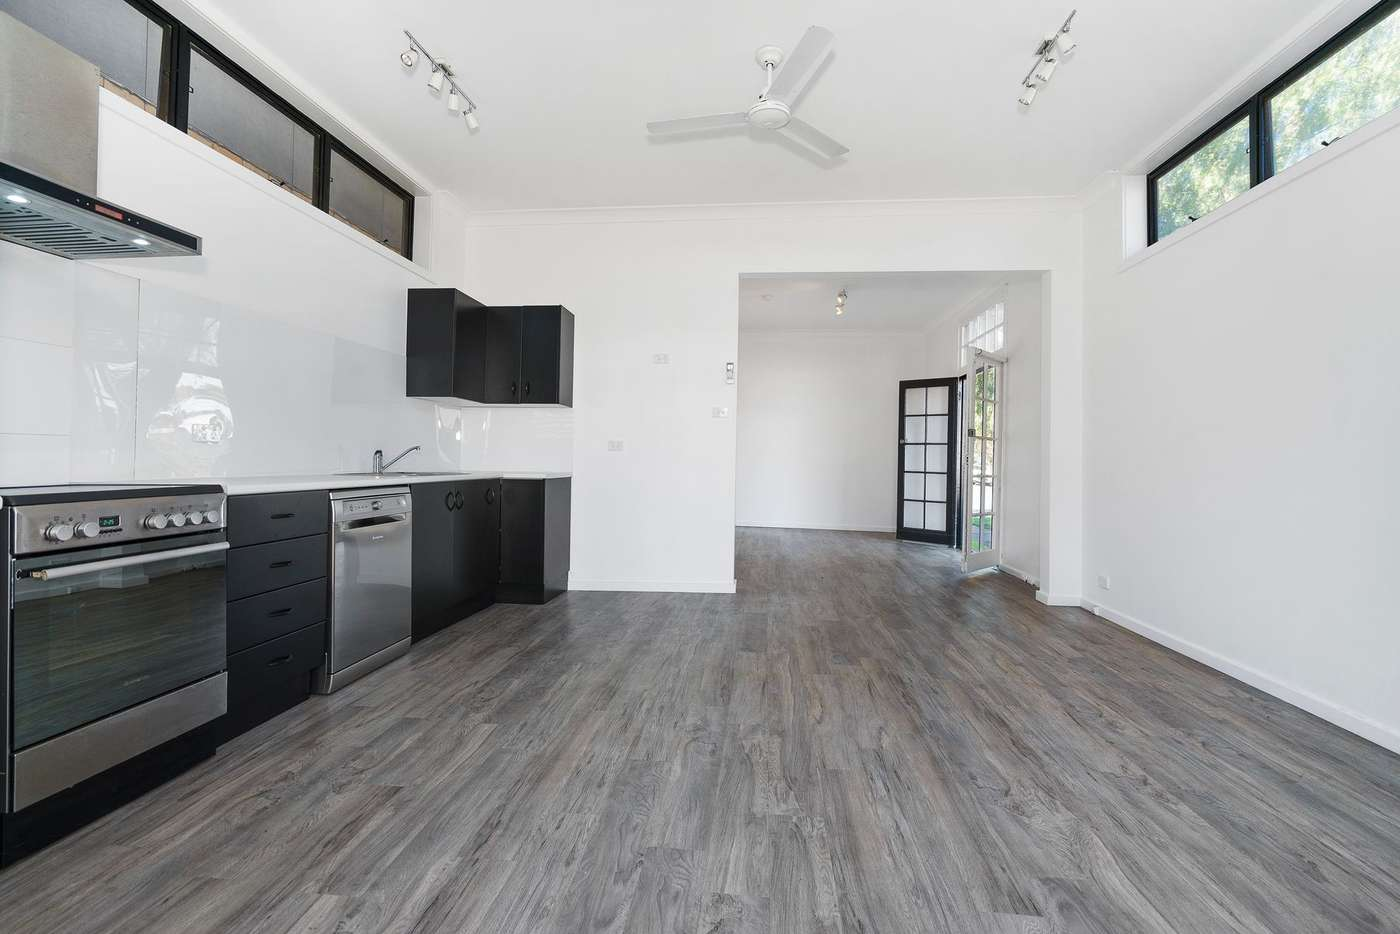 Sixth view of Homely unit listing, 1/101 Chatham Street, Broadmeadow NSW 2292